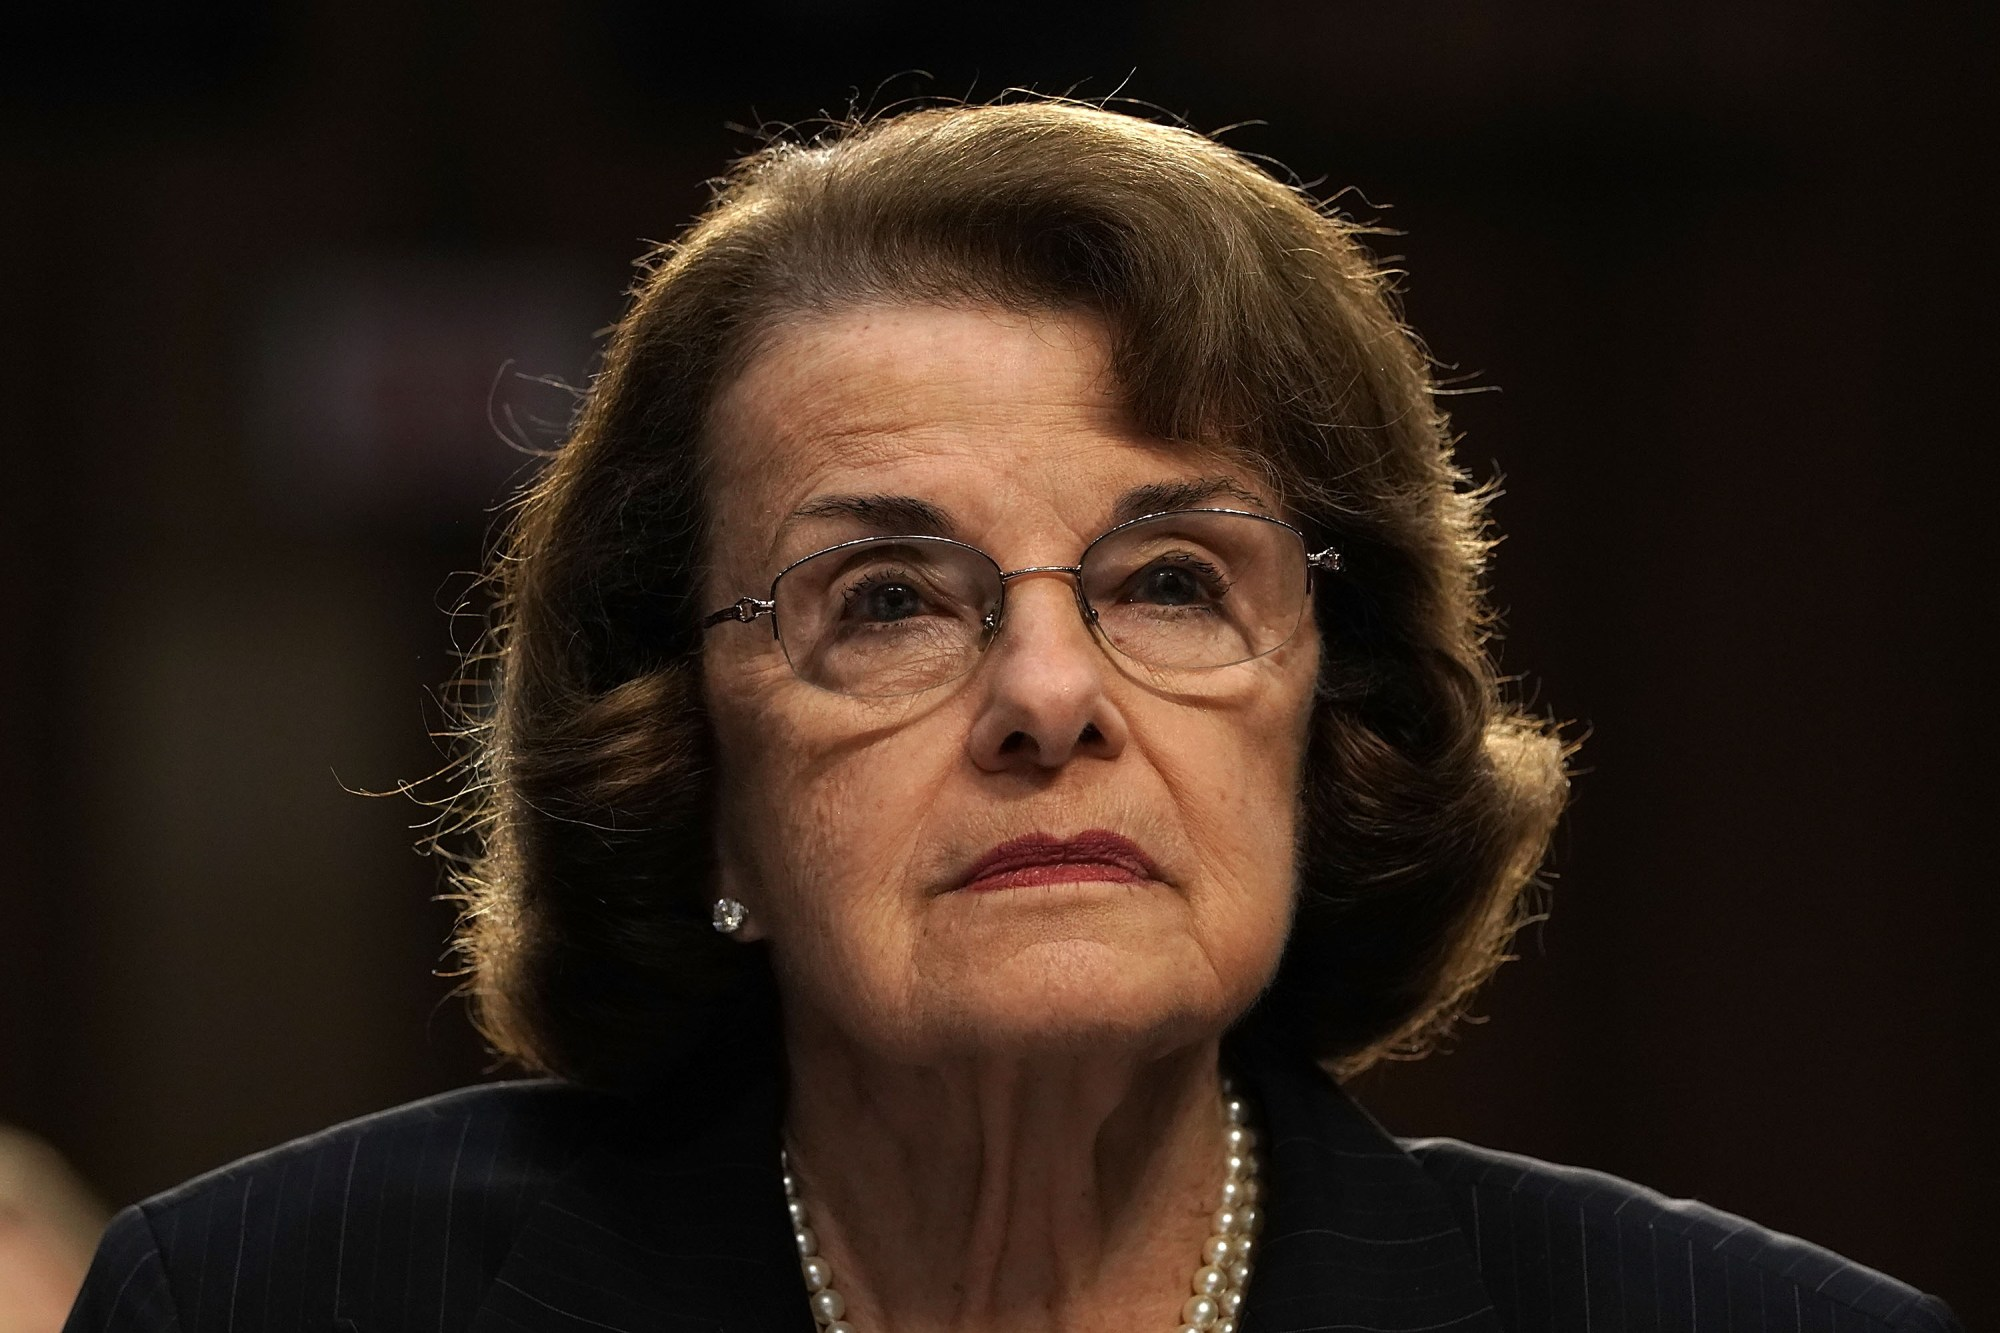 Sen. Dianne Feinstein testifies during a hearing before a Senate subcommittee on Capitol Hill, July 24, 2018. (Credit: Alex Wong / Getty Images)